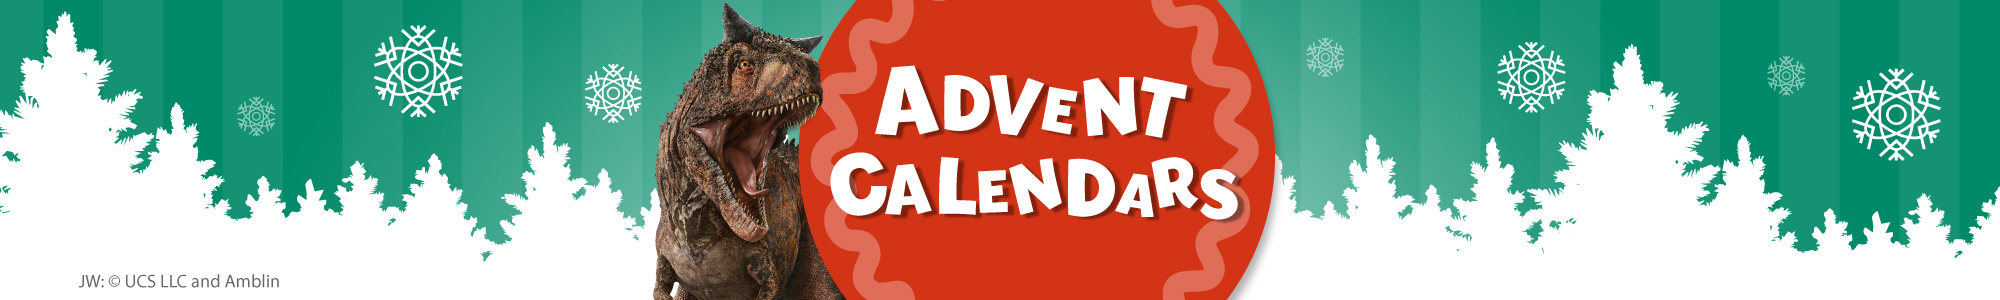 advent-calendars-2020_Page-Banner-2000x300px.jpg